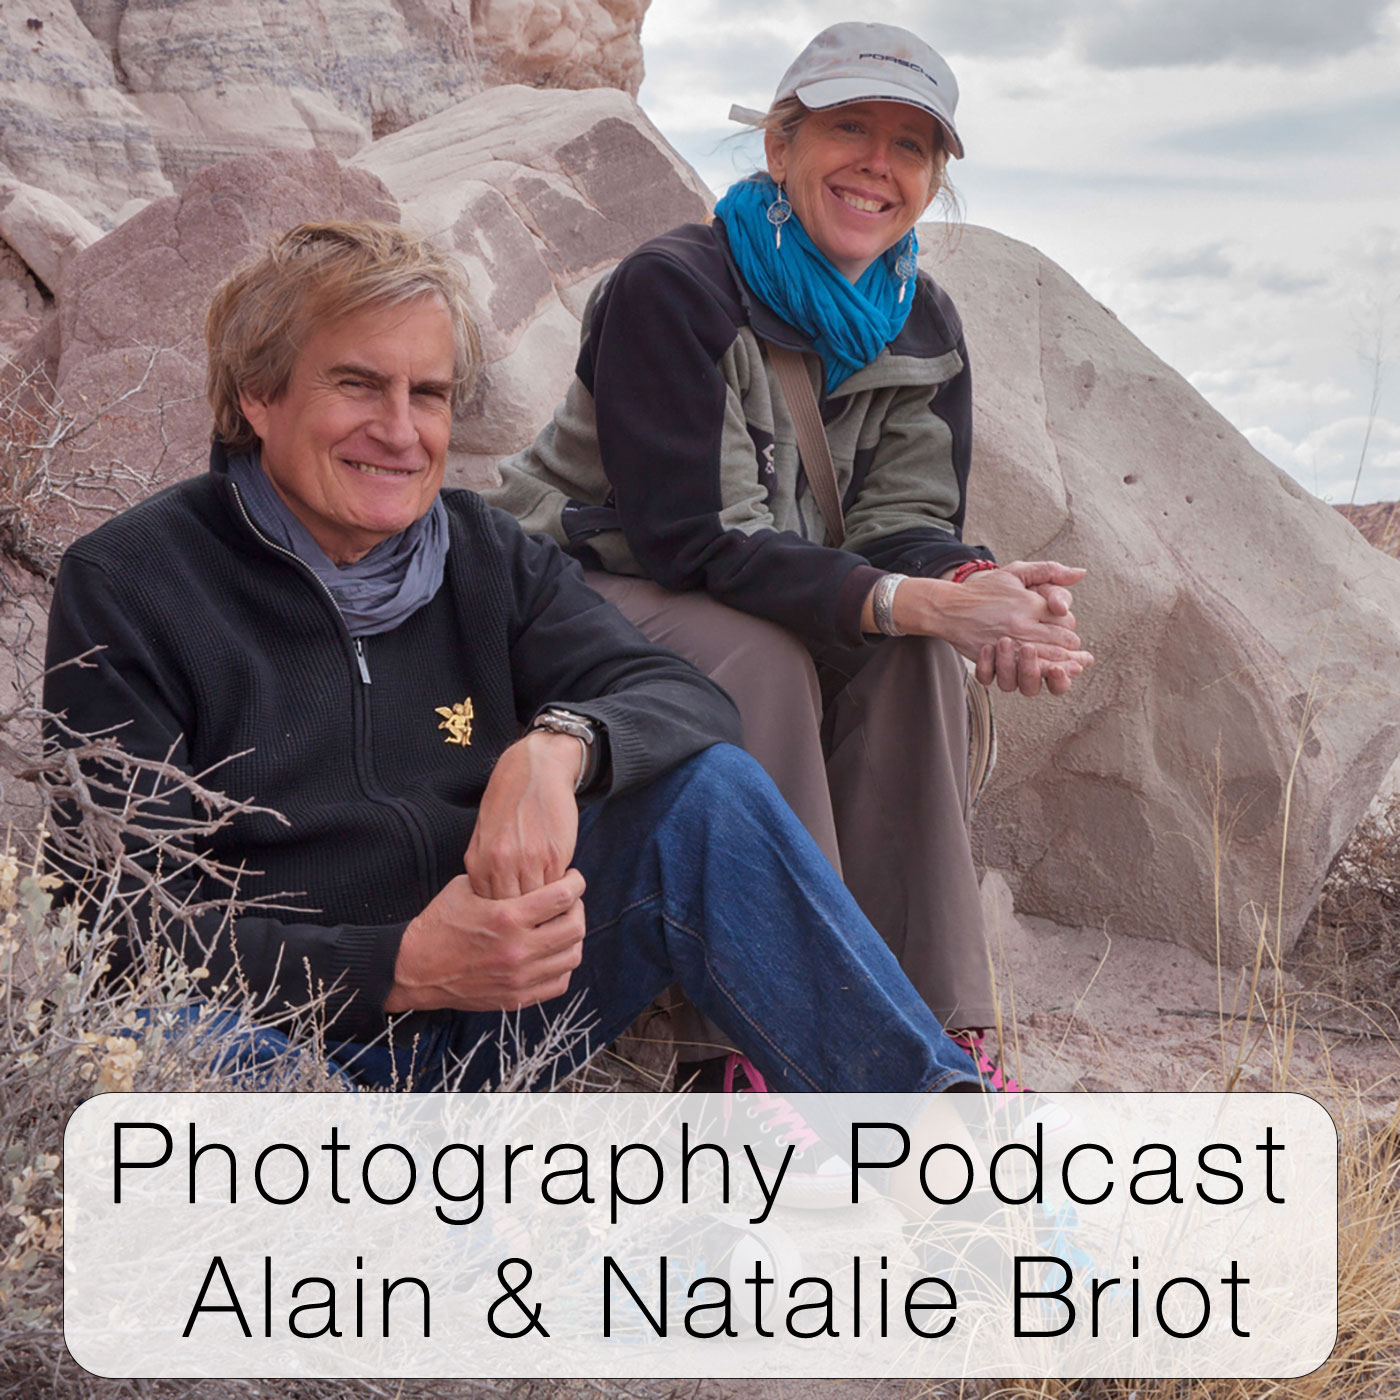 Photography Podcast with Alain and Natalie Briot